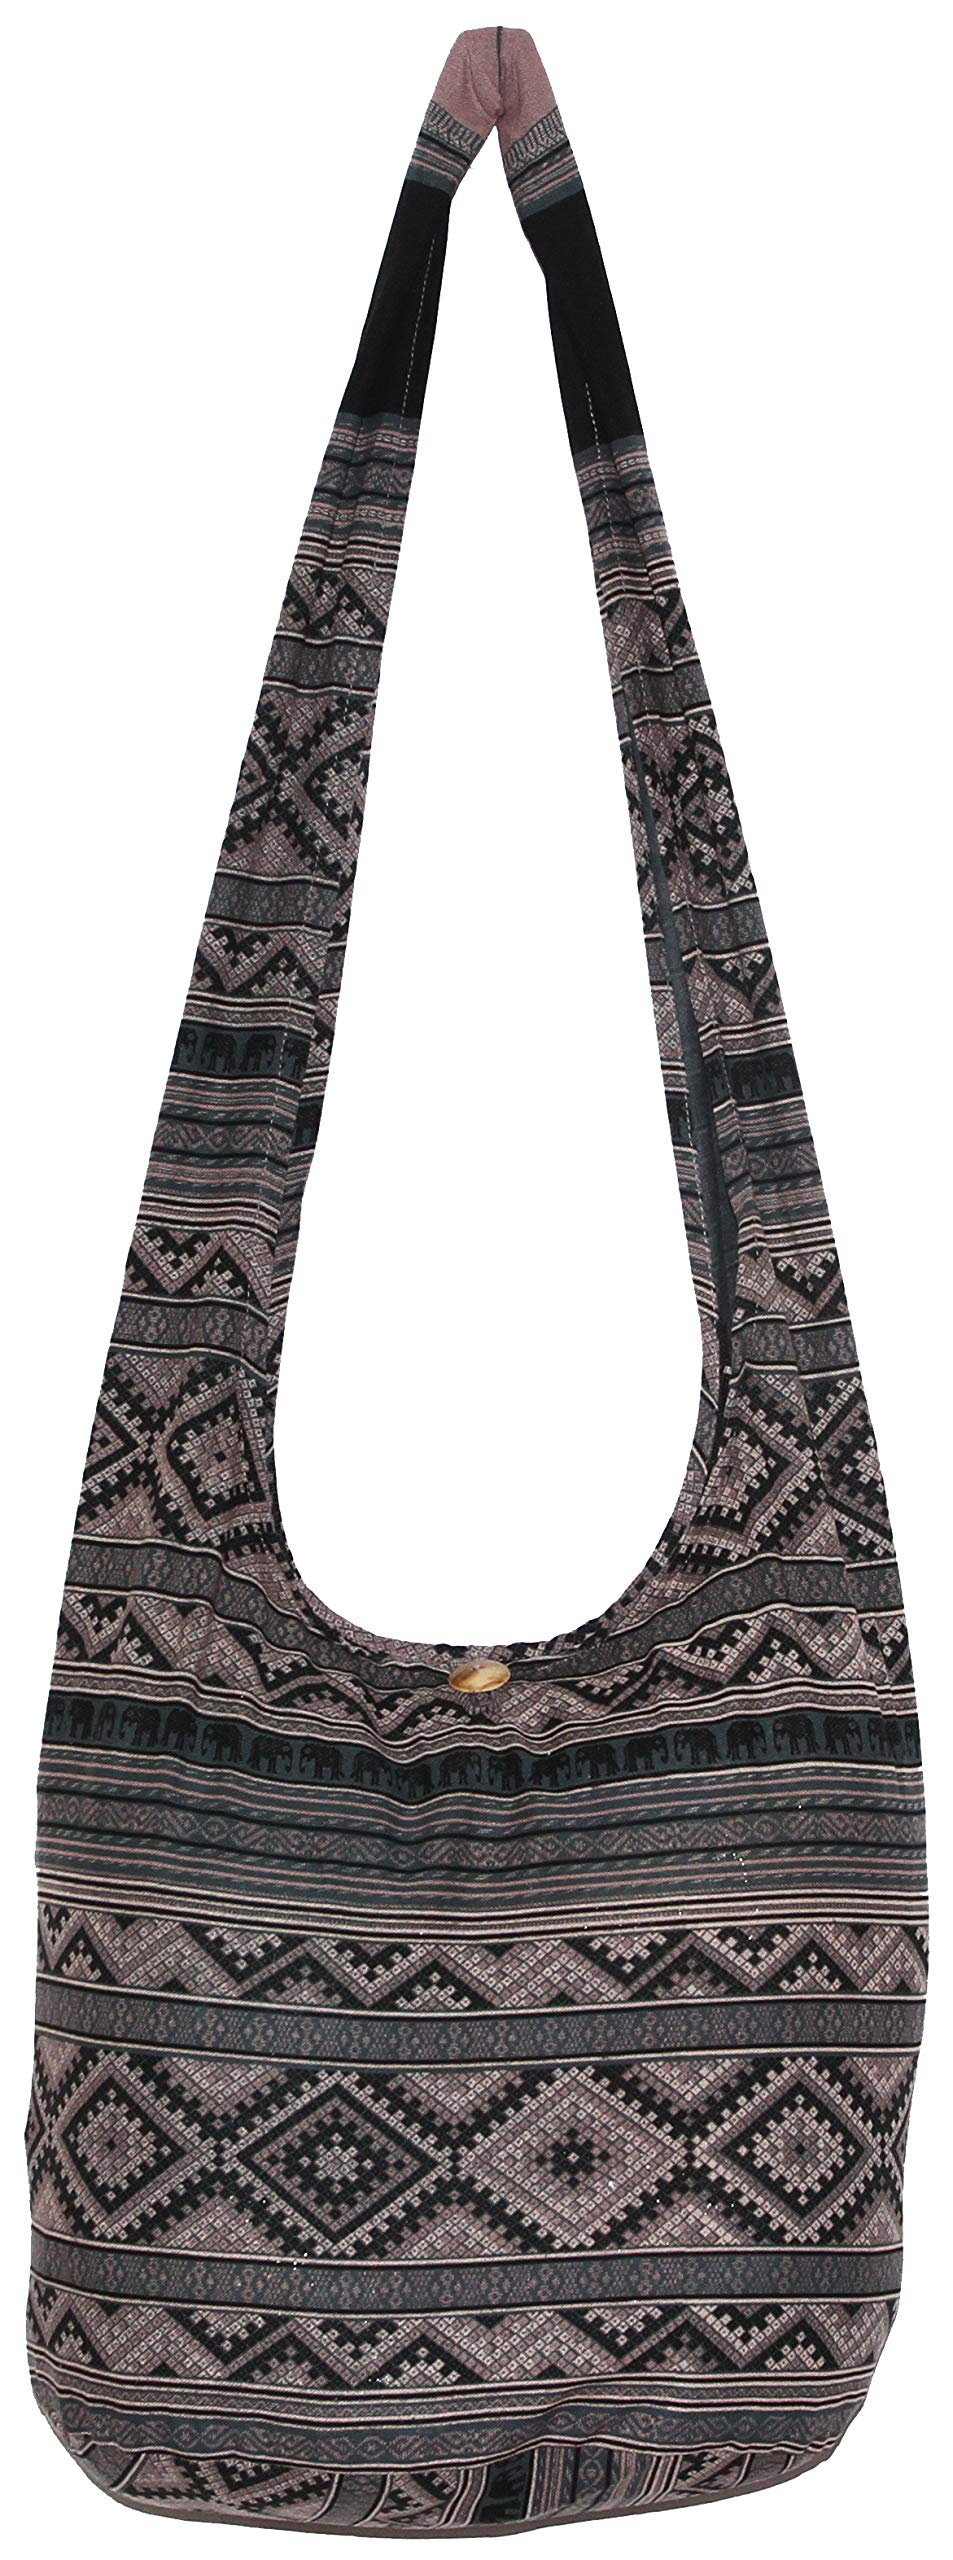 Elephant Hippie Bohemian Shoulder Hobo Boho Cross Body Bag 37 Inch (LightGrey)